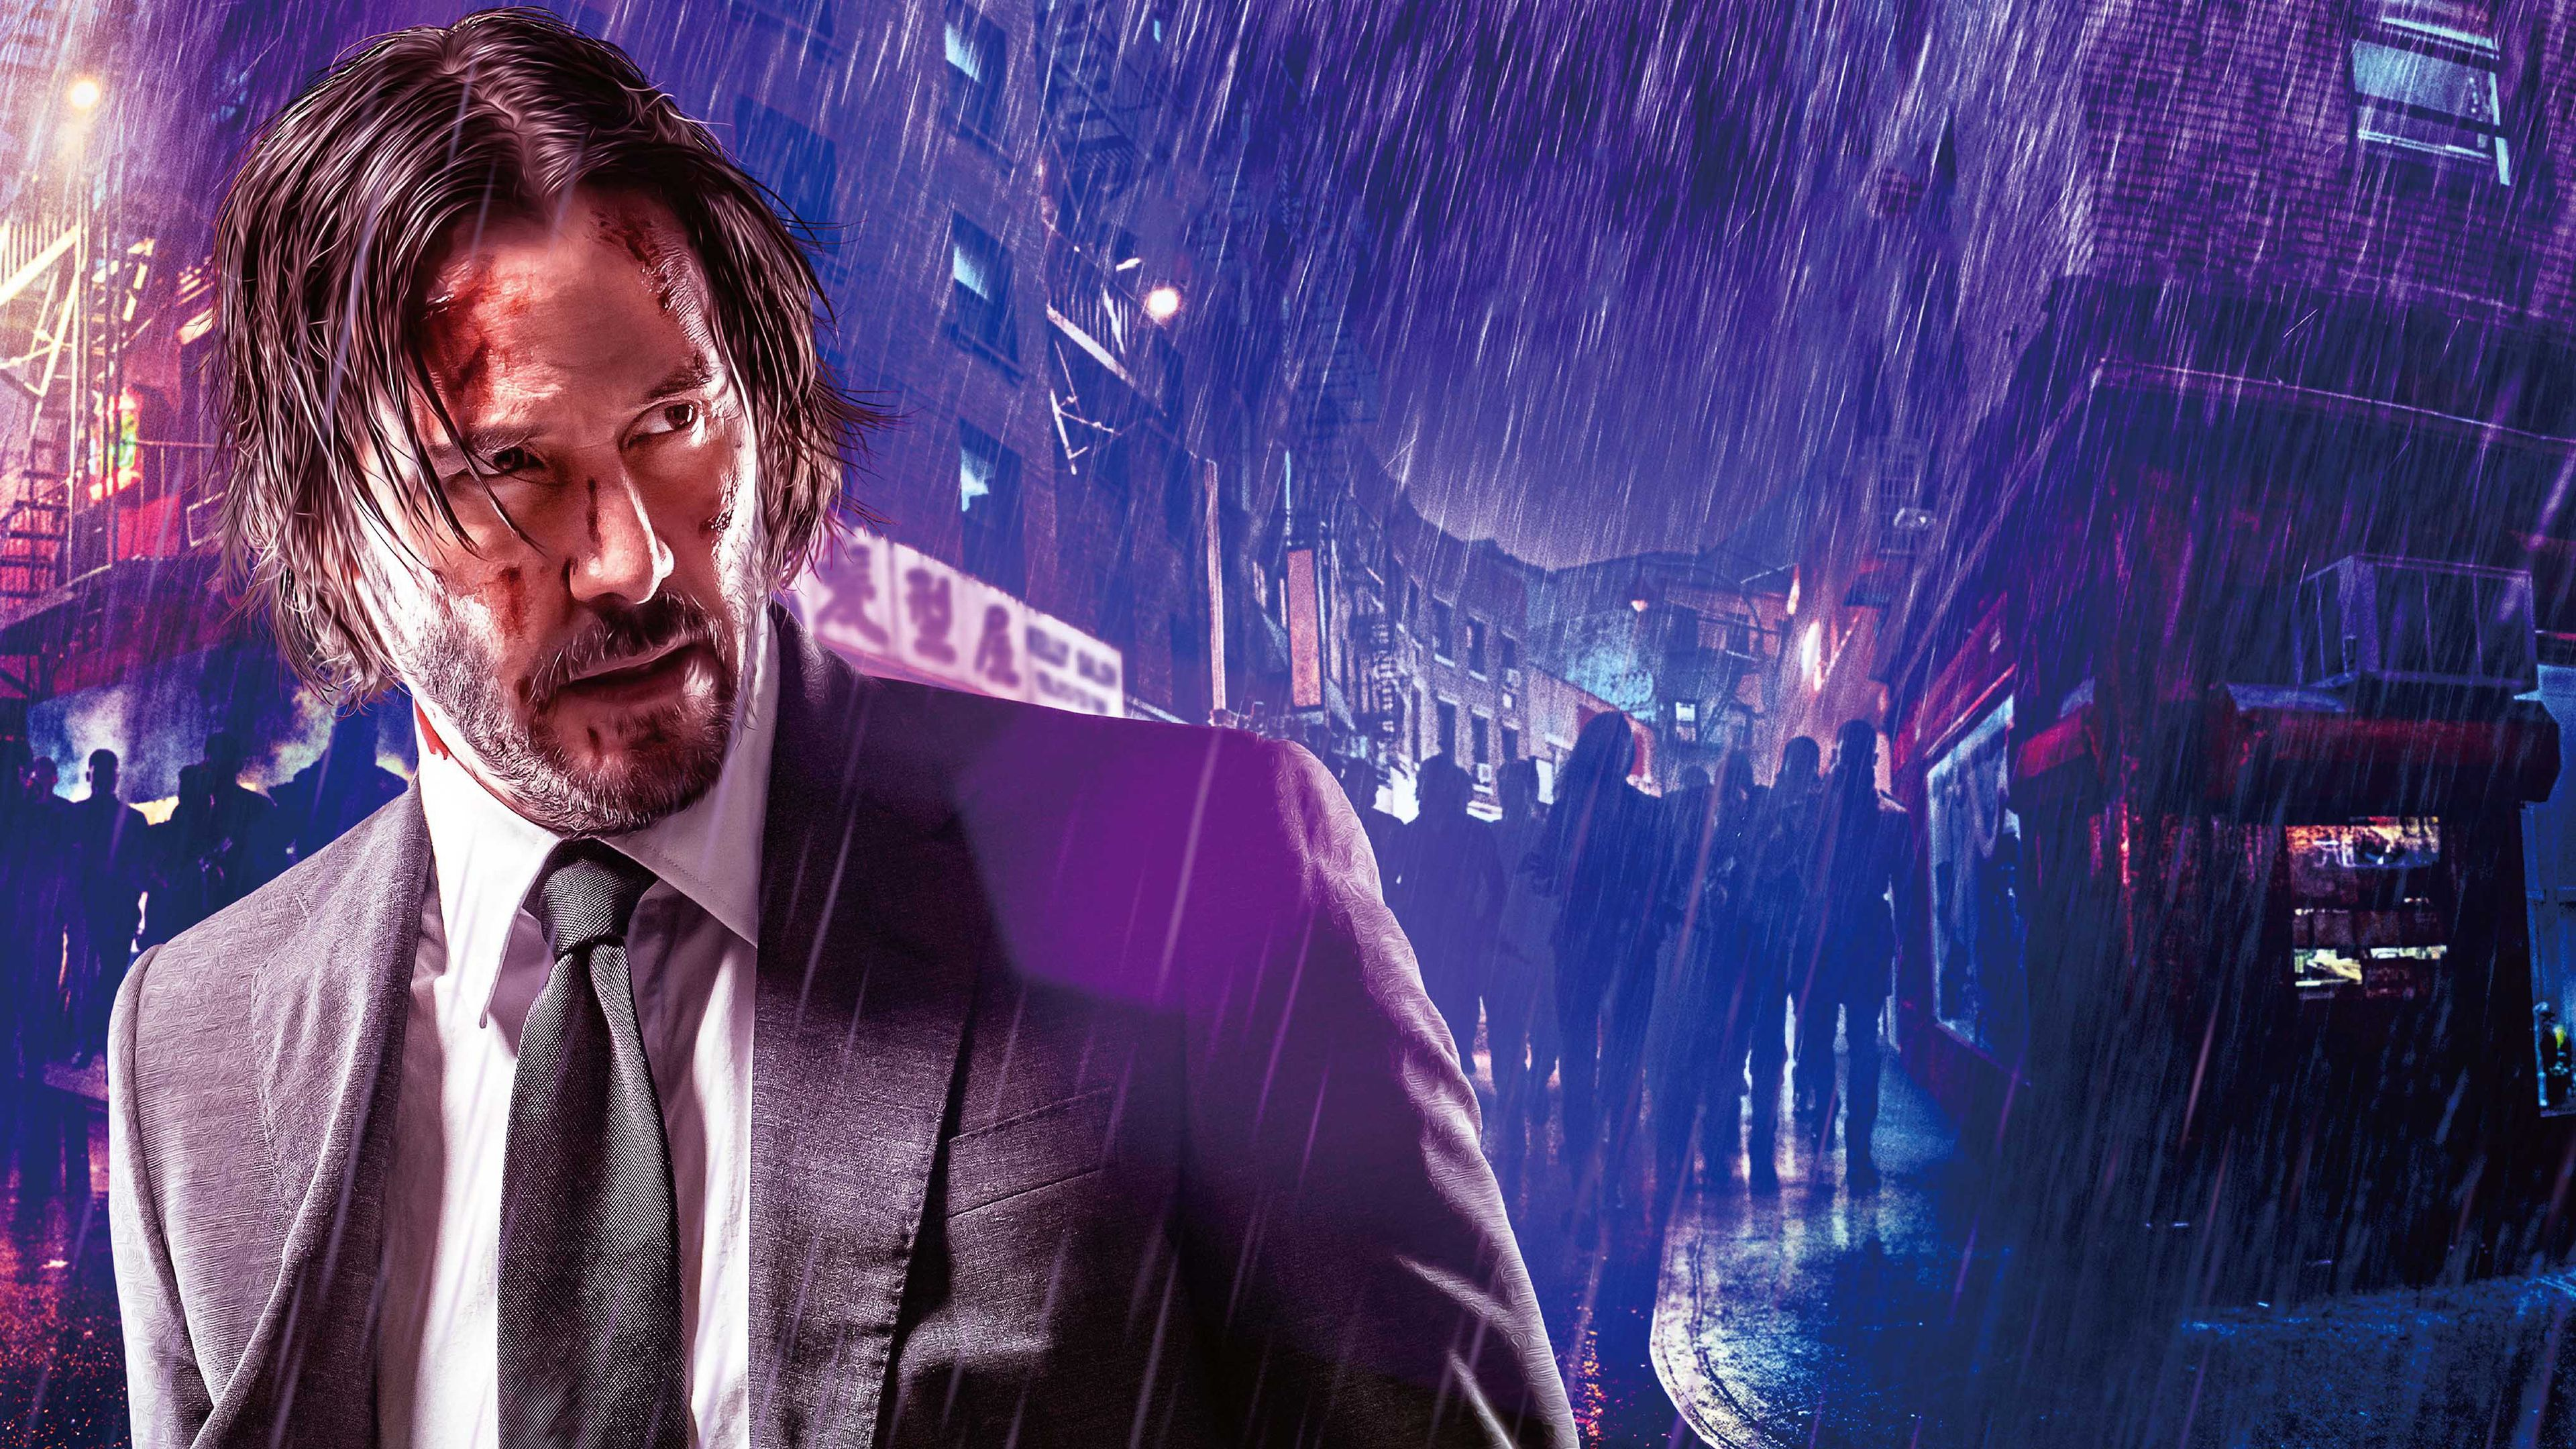 John Wick Chapter 3 Parabellum 4k 2019 Movies Wallpapers Keanu Reeves Wallpapers John Wick Chapter 3 Wallpap Keanu Reeves Free Movies Online Movie Wallpapers